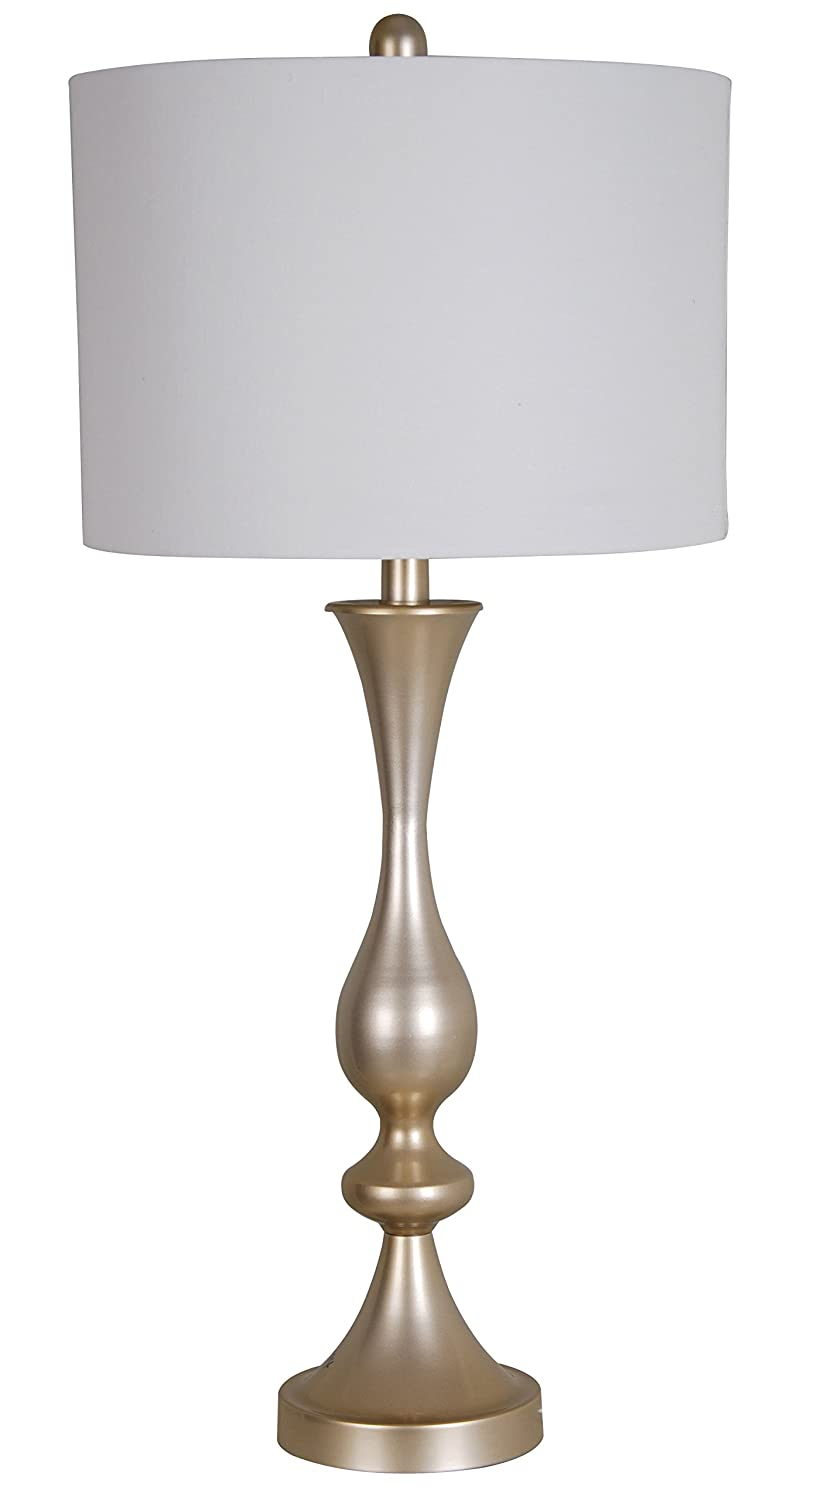 Illuminada 19203-000 Dimmable 29-Inch LED Antique Silver Metal Table Lamp with Round Hardback Shade and LED Bulb